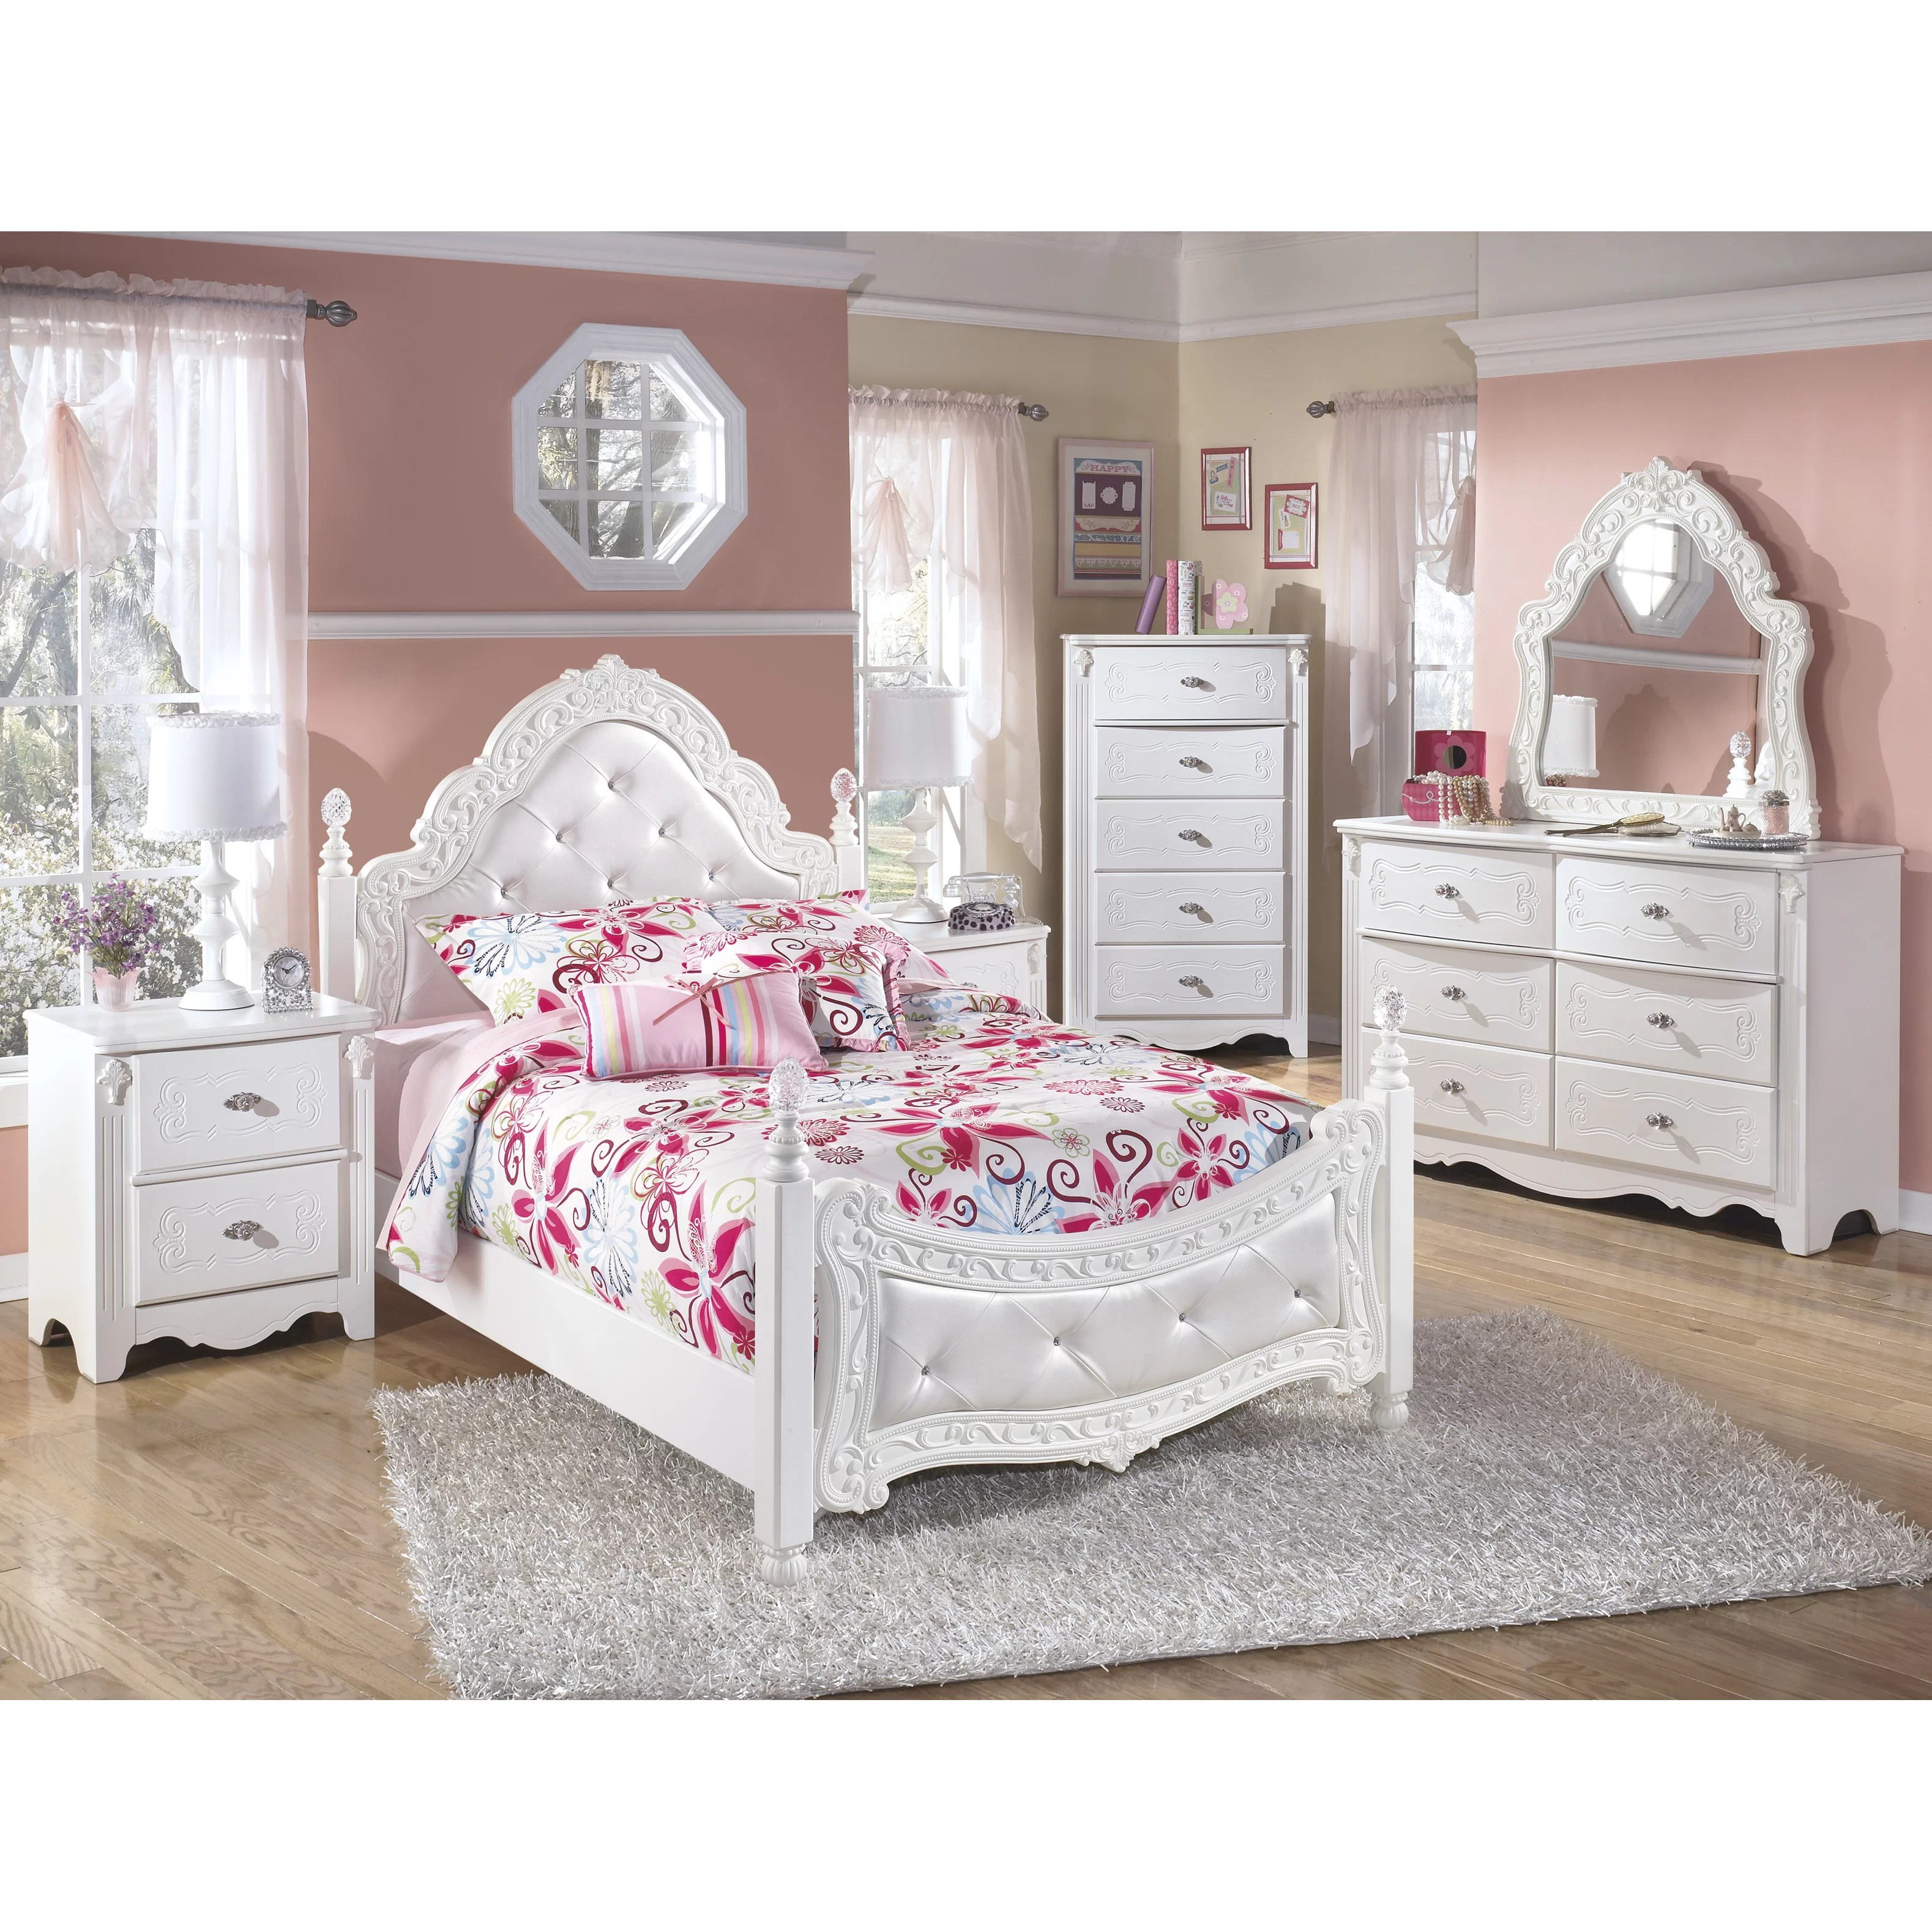 Kids Bedroom Chairs Signature Design By Ashley Exquisite Four Poster